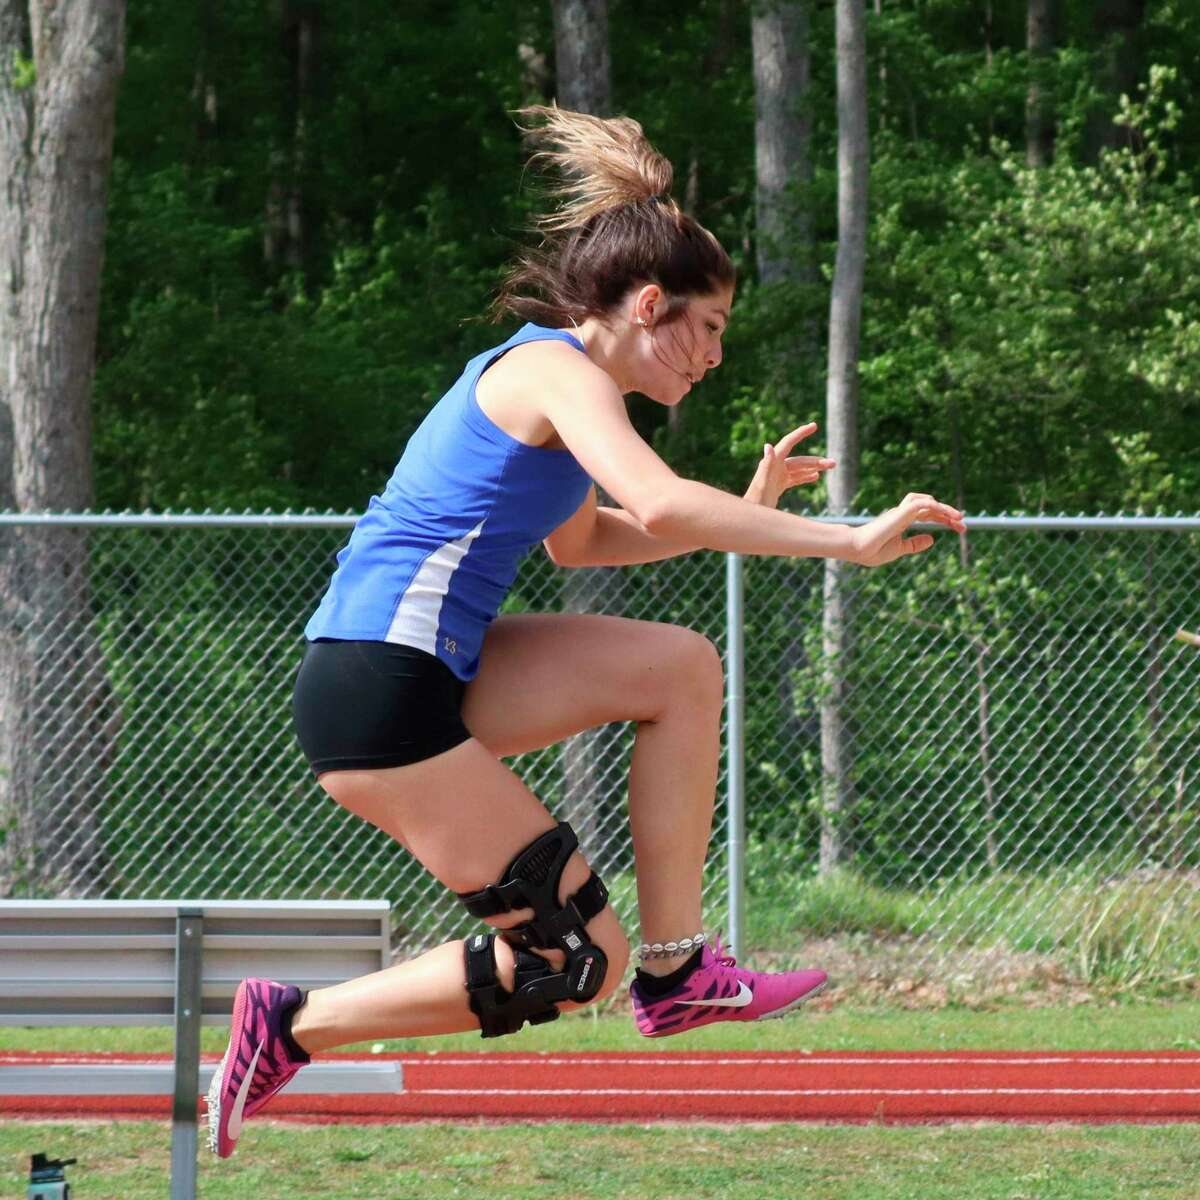 Sarah Bromley competes in the long jump during her final track meet for Onekama. (Robert Myers/News Advocate)